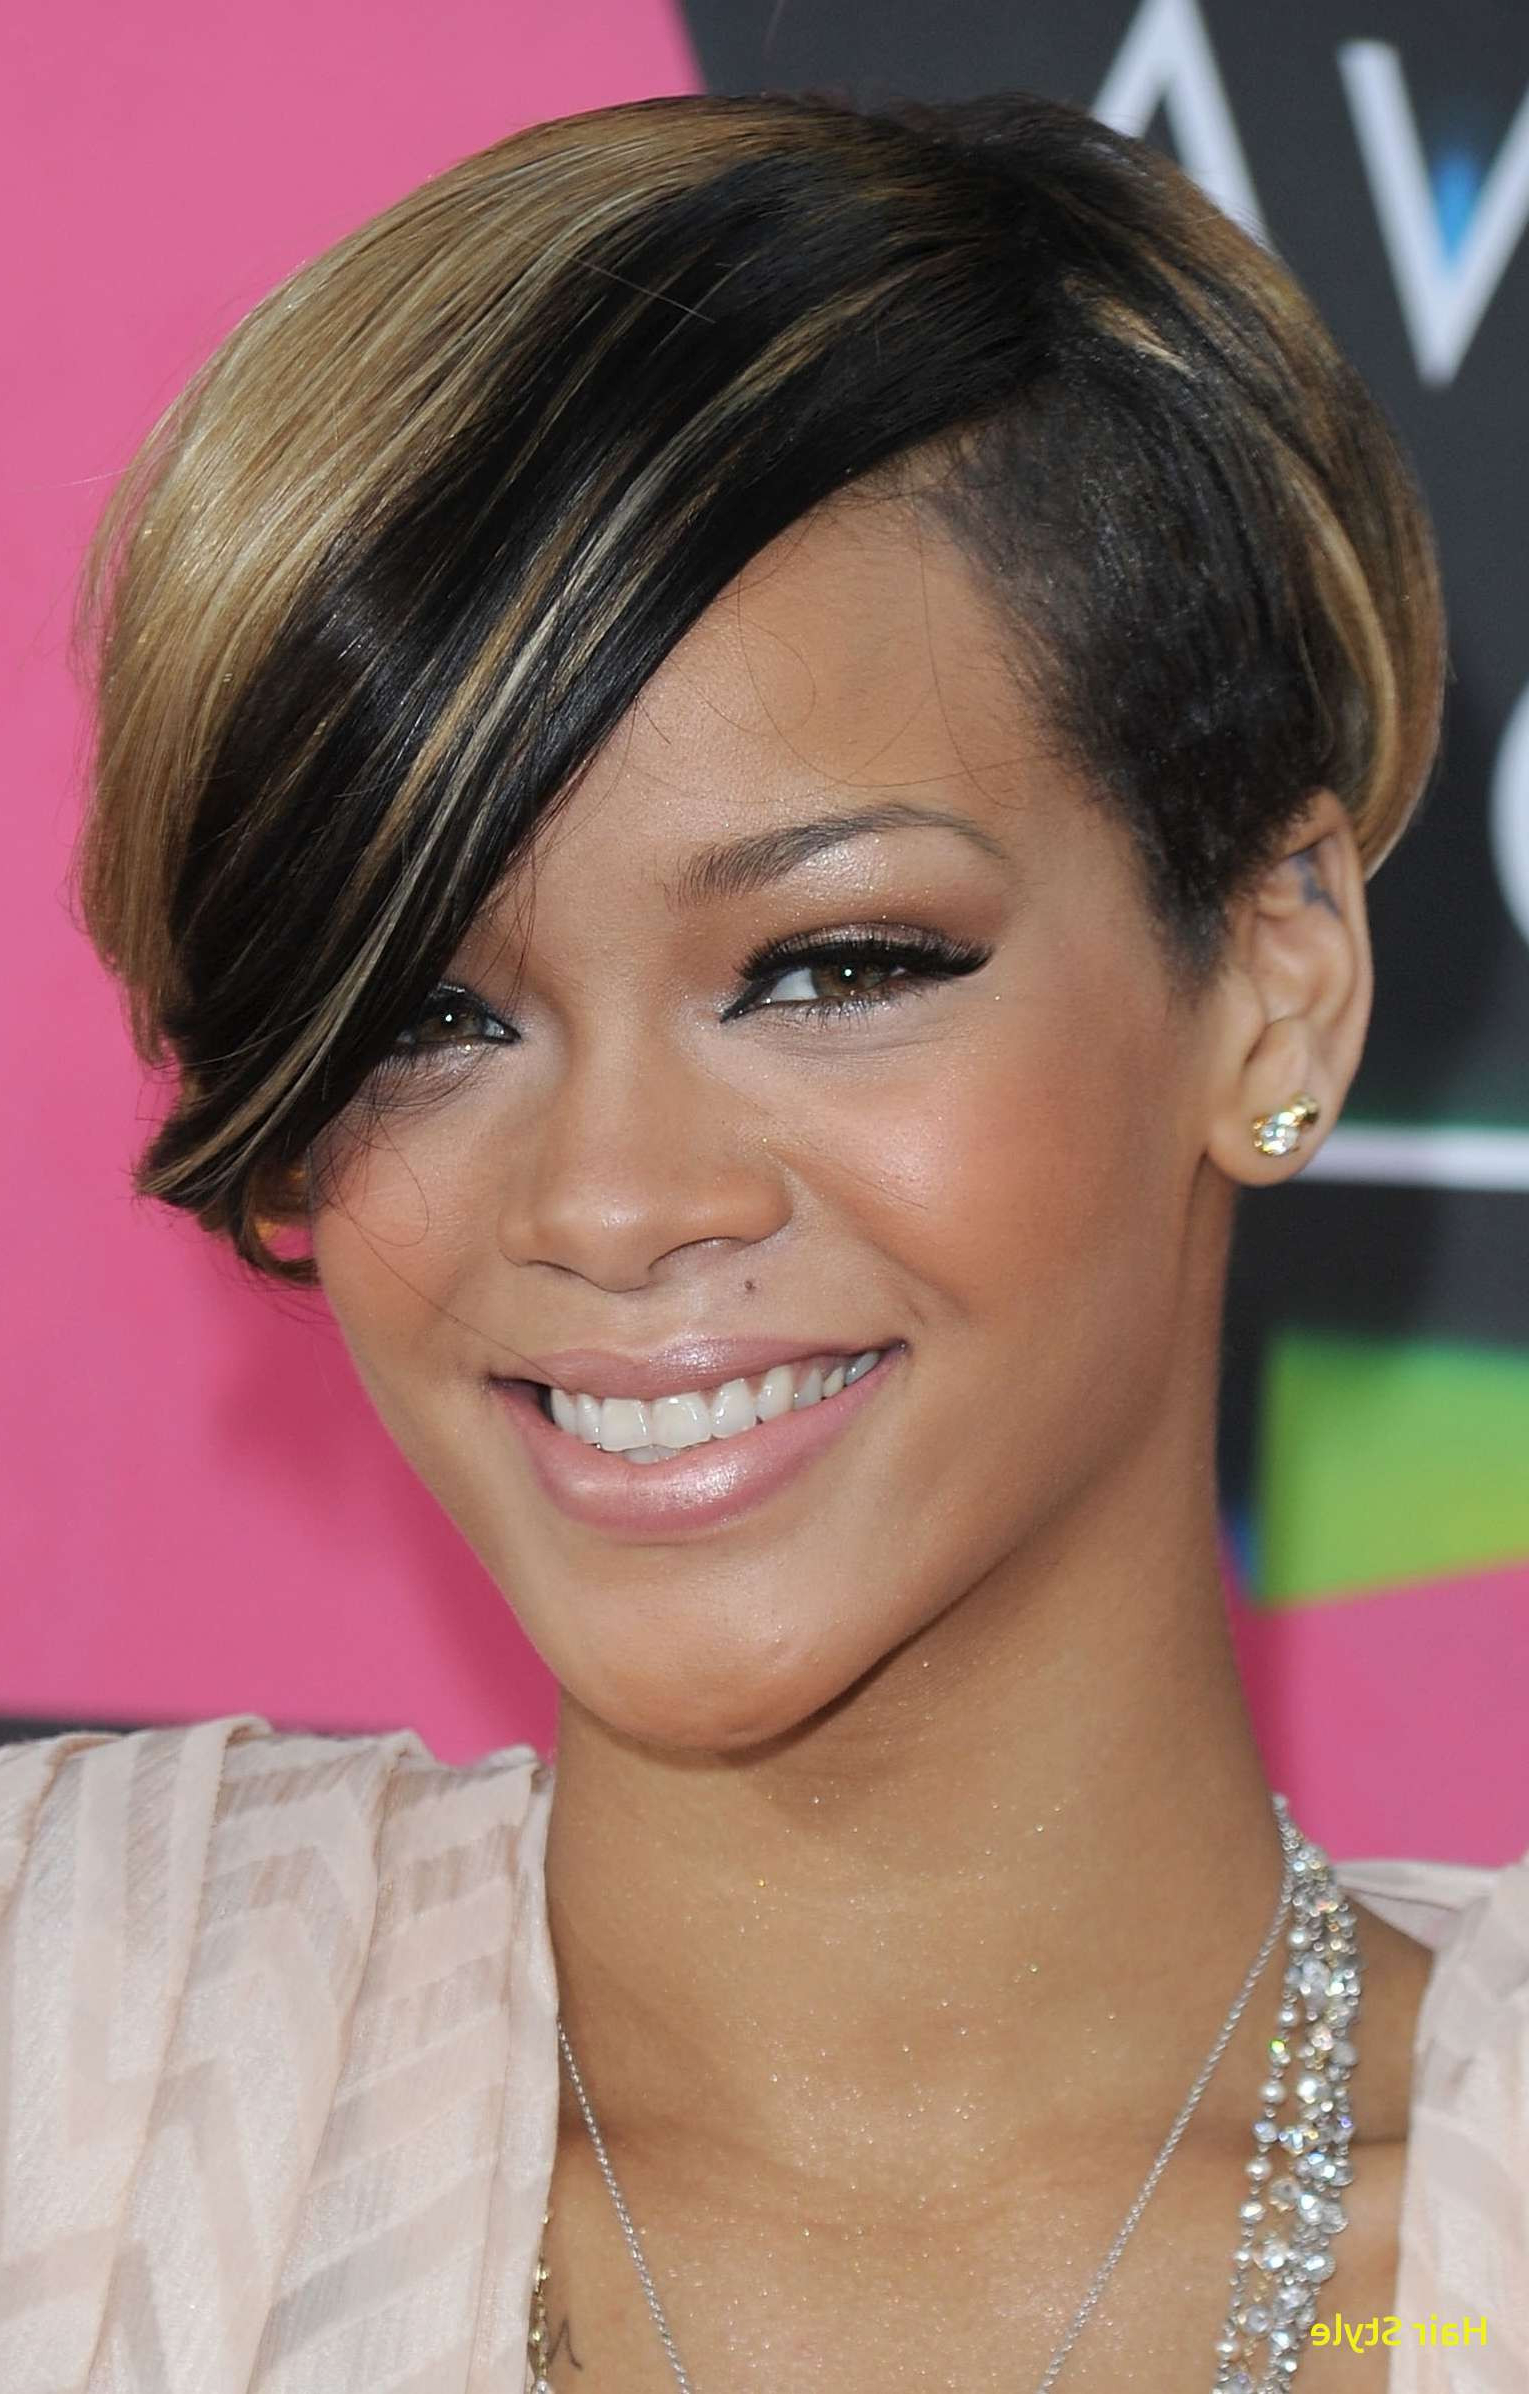 Hairstyles For Black Women With Round Faces Gallery New Luxury Short Throughout Short Hairstyles For Round Faces African American (View 25 of 25)